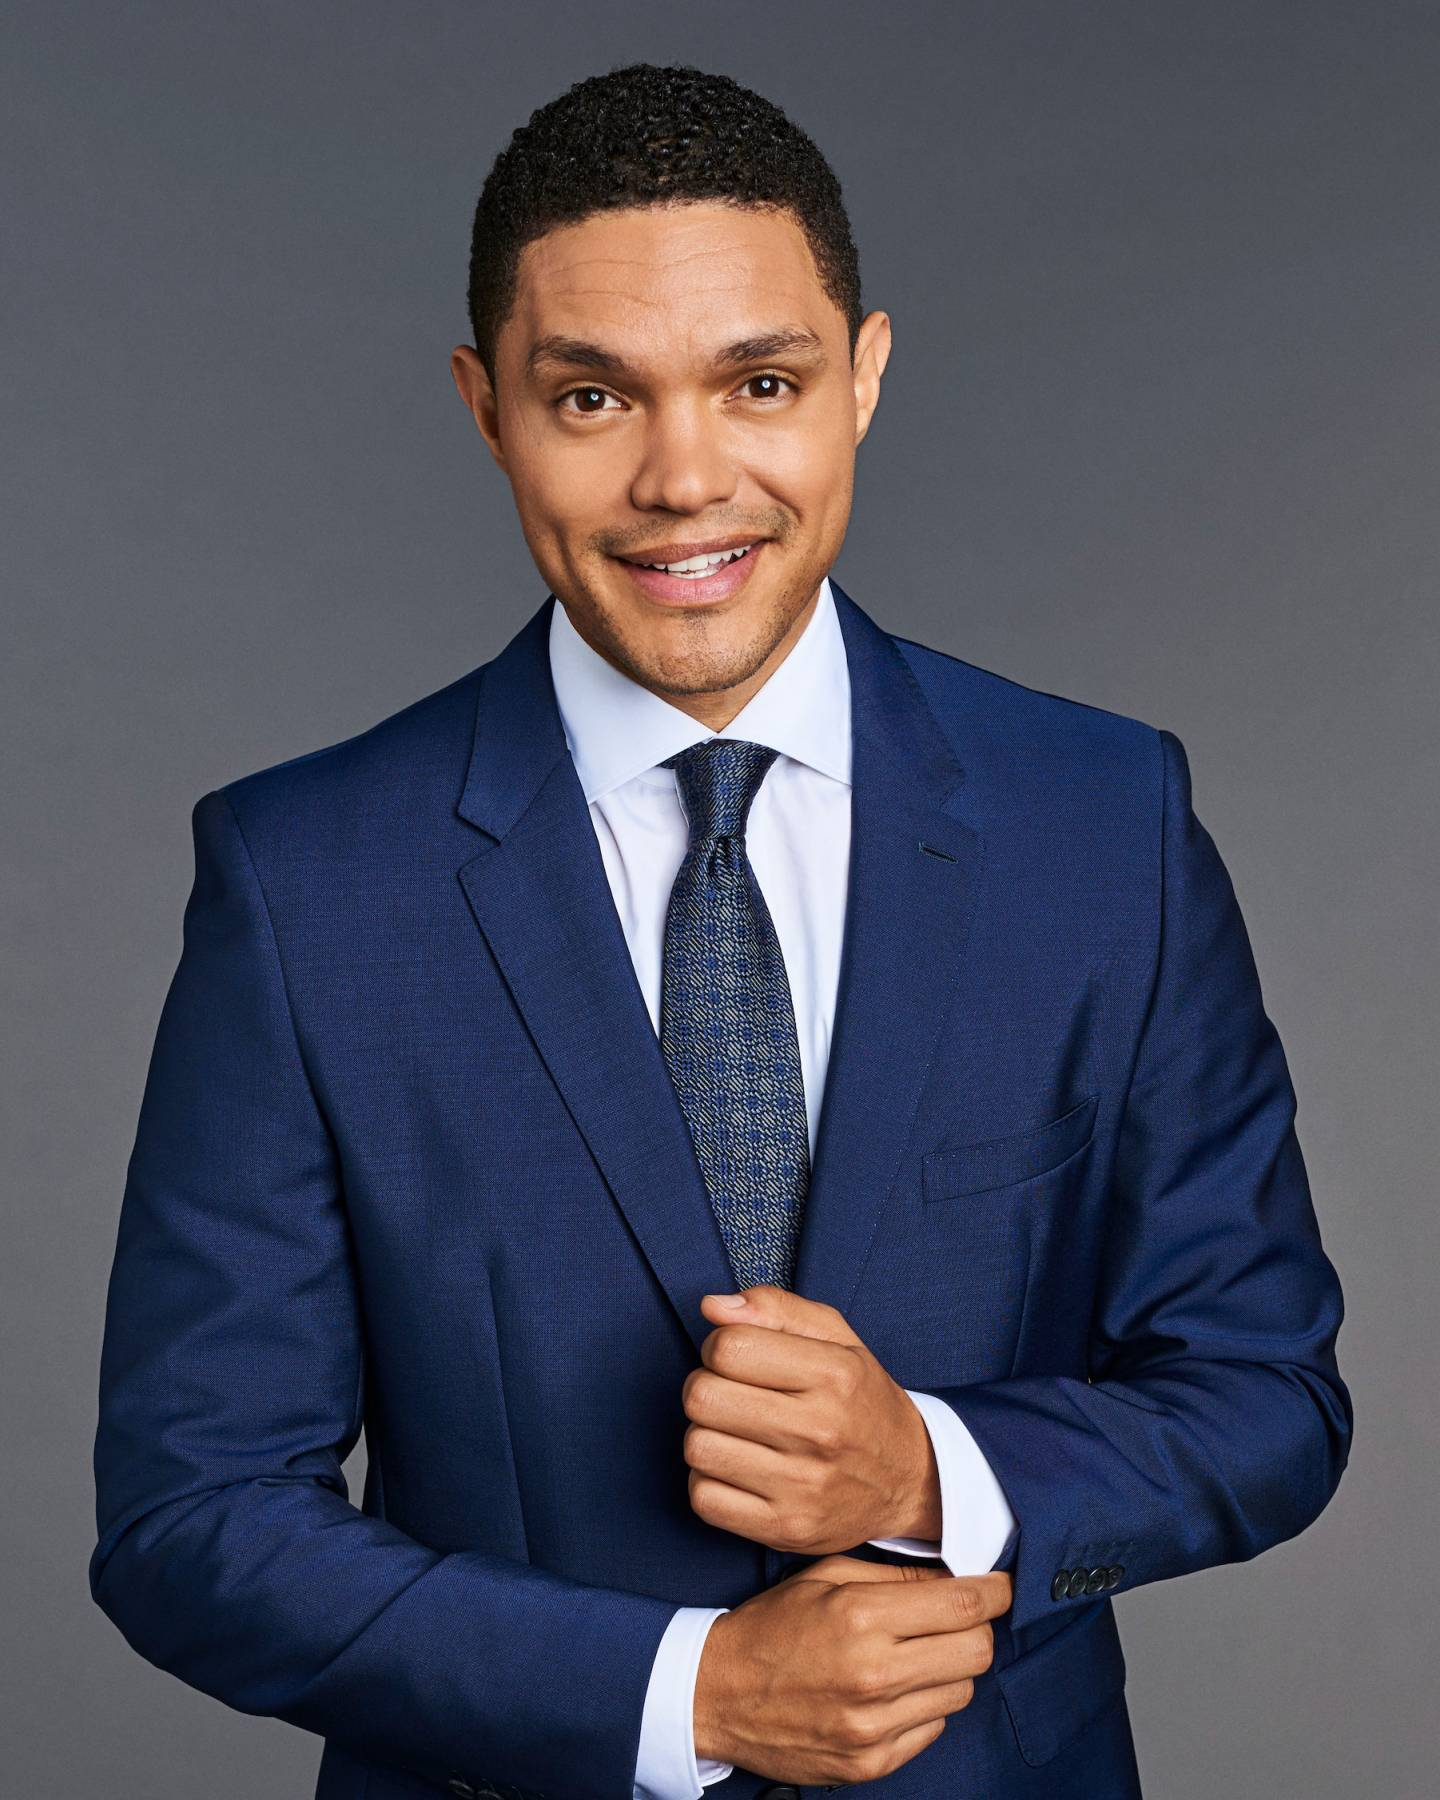 Author, comedian and 'The Daily Show' host Trevor Noah selected as  Princeton's 2021 Class Day speaker